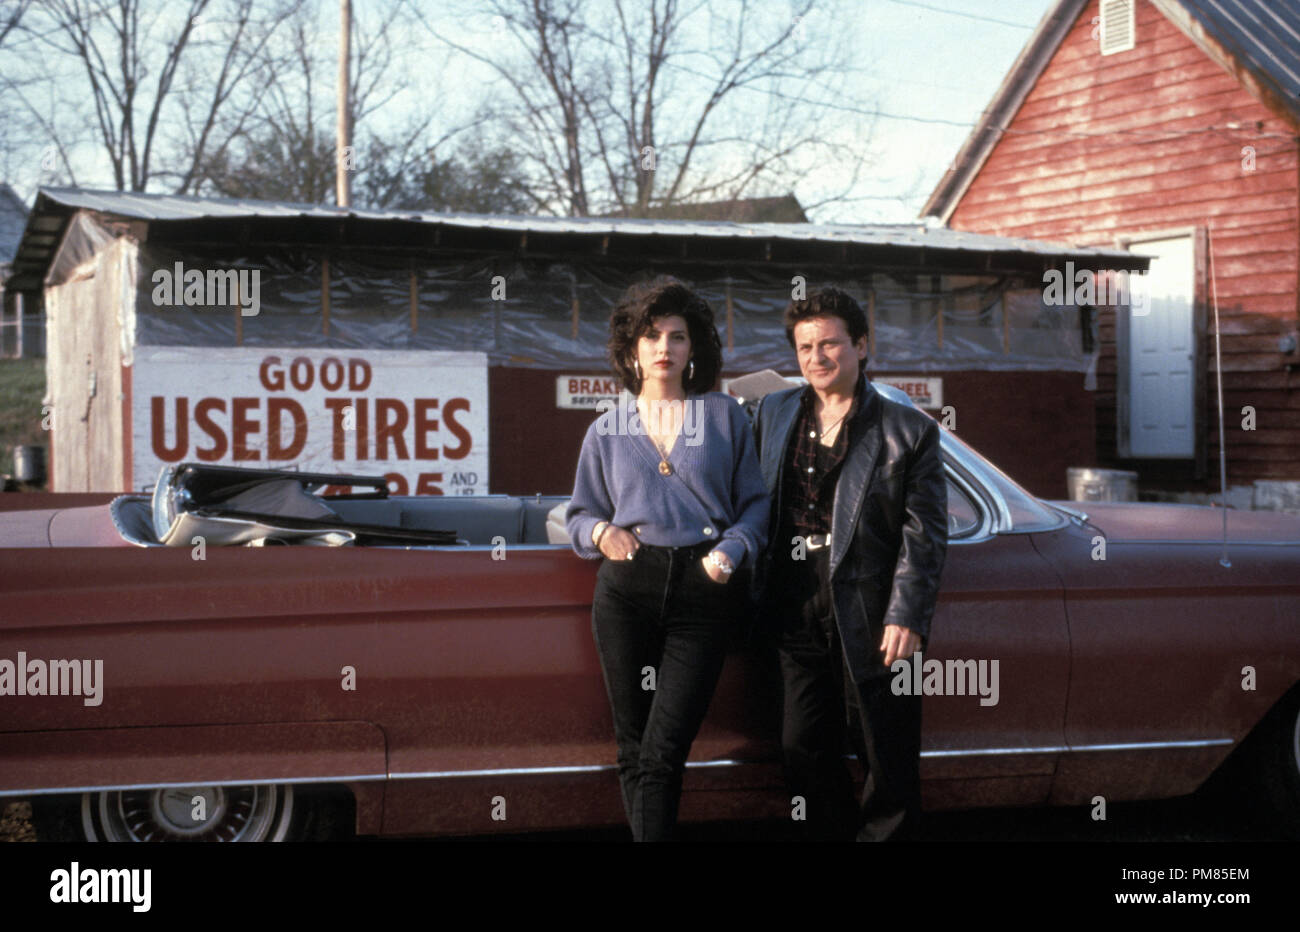 Film still or Publicity still from 'My Cousin Vinny' Marisa Tomei, Joe Pesci © 1992 20th Century Fox Photo Credit: Ben Glass All Rights Reserved   File Reference # 31487_166THA  For Editorial Use Only - Stock Image